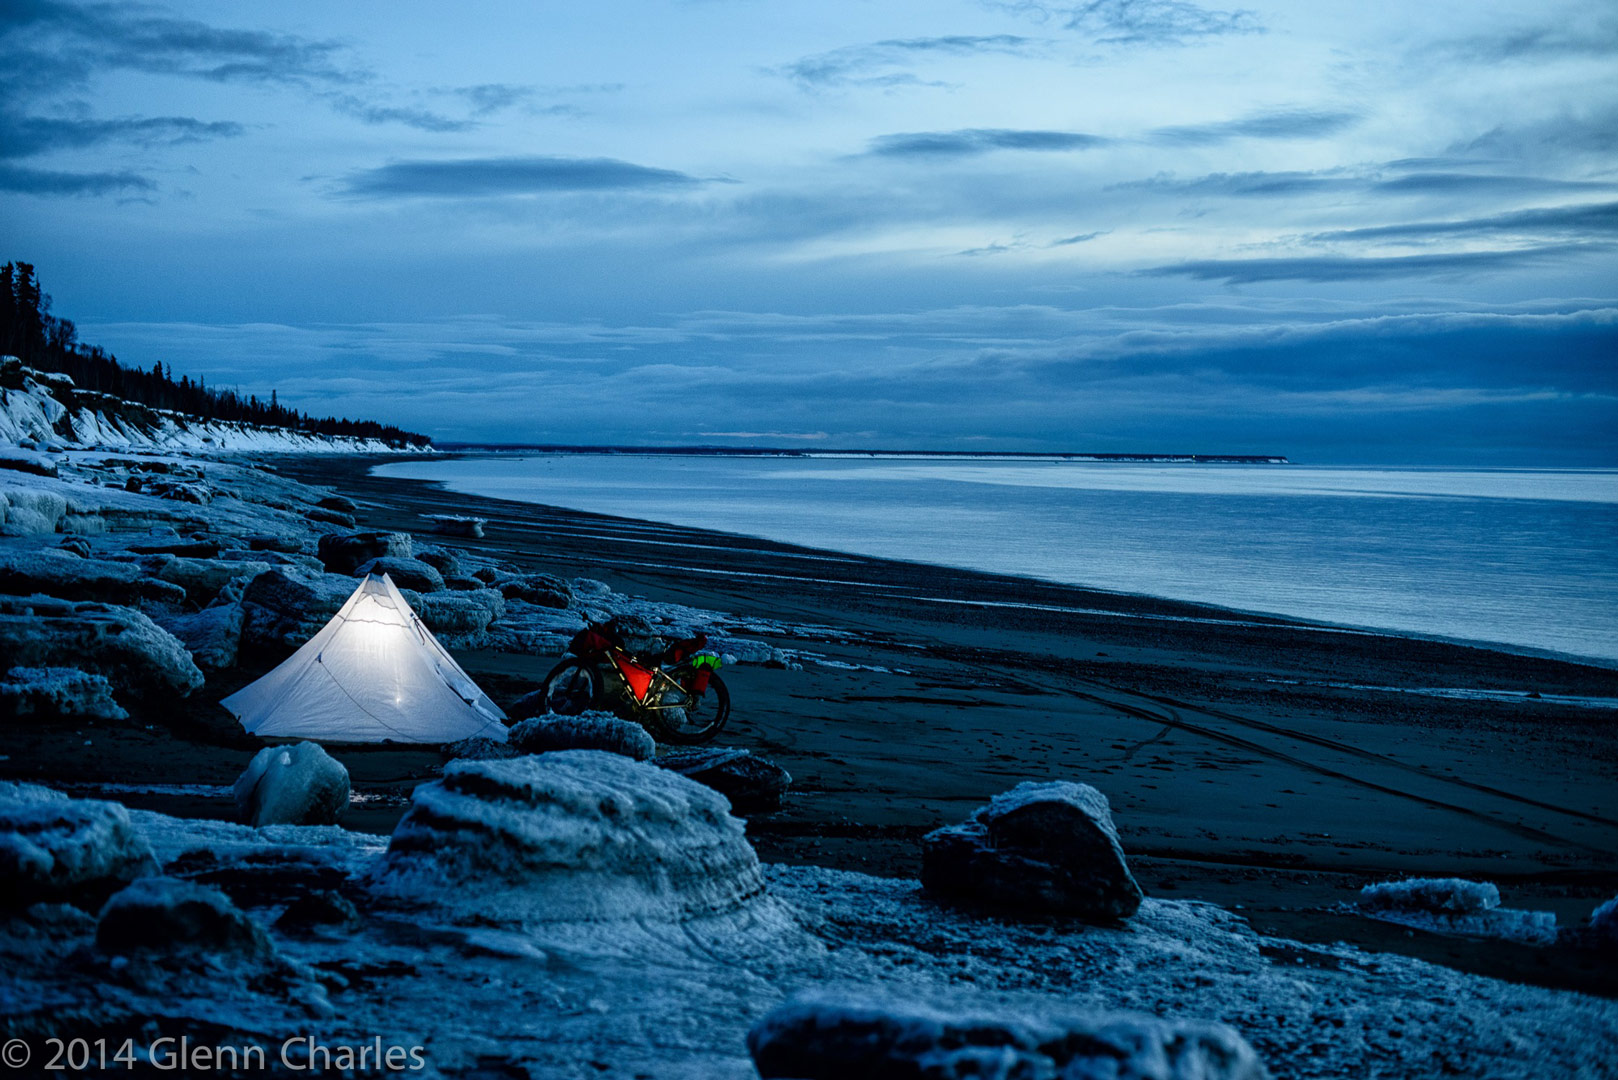 Glen Charles bike camping on a beach in Alaska.